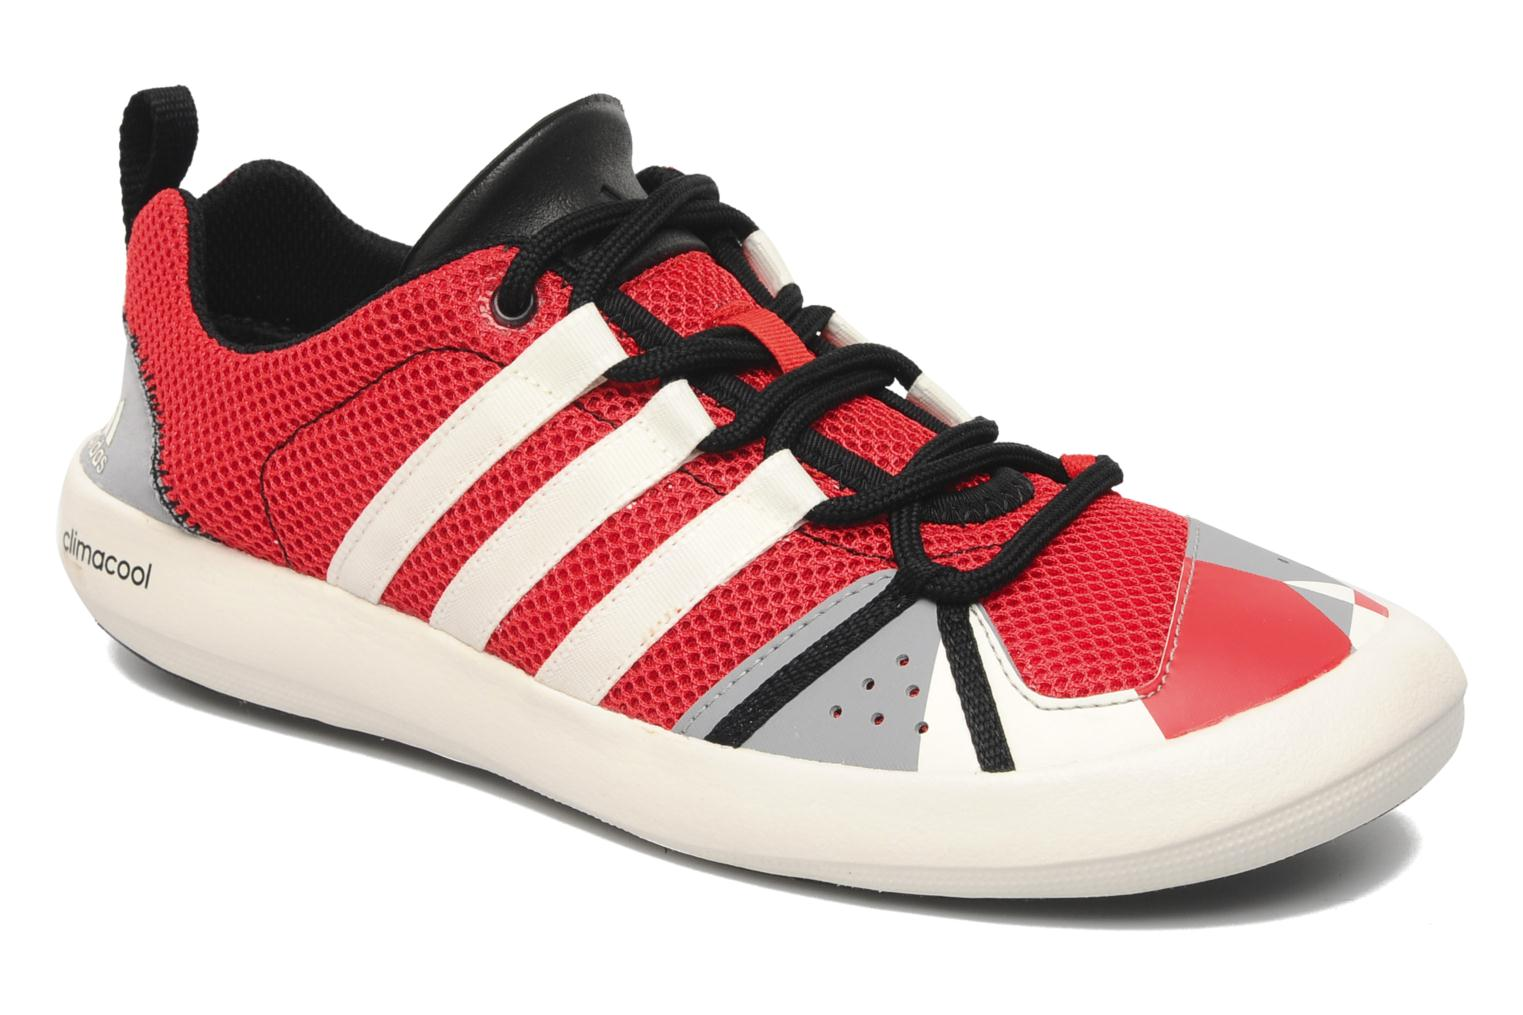 Zapatillas Performance Adidas Climacool Deporte Lace Boat Foto E2bH9WYDeI